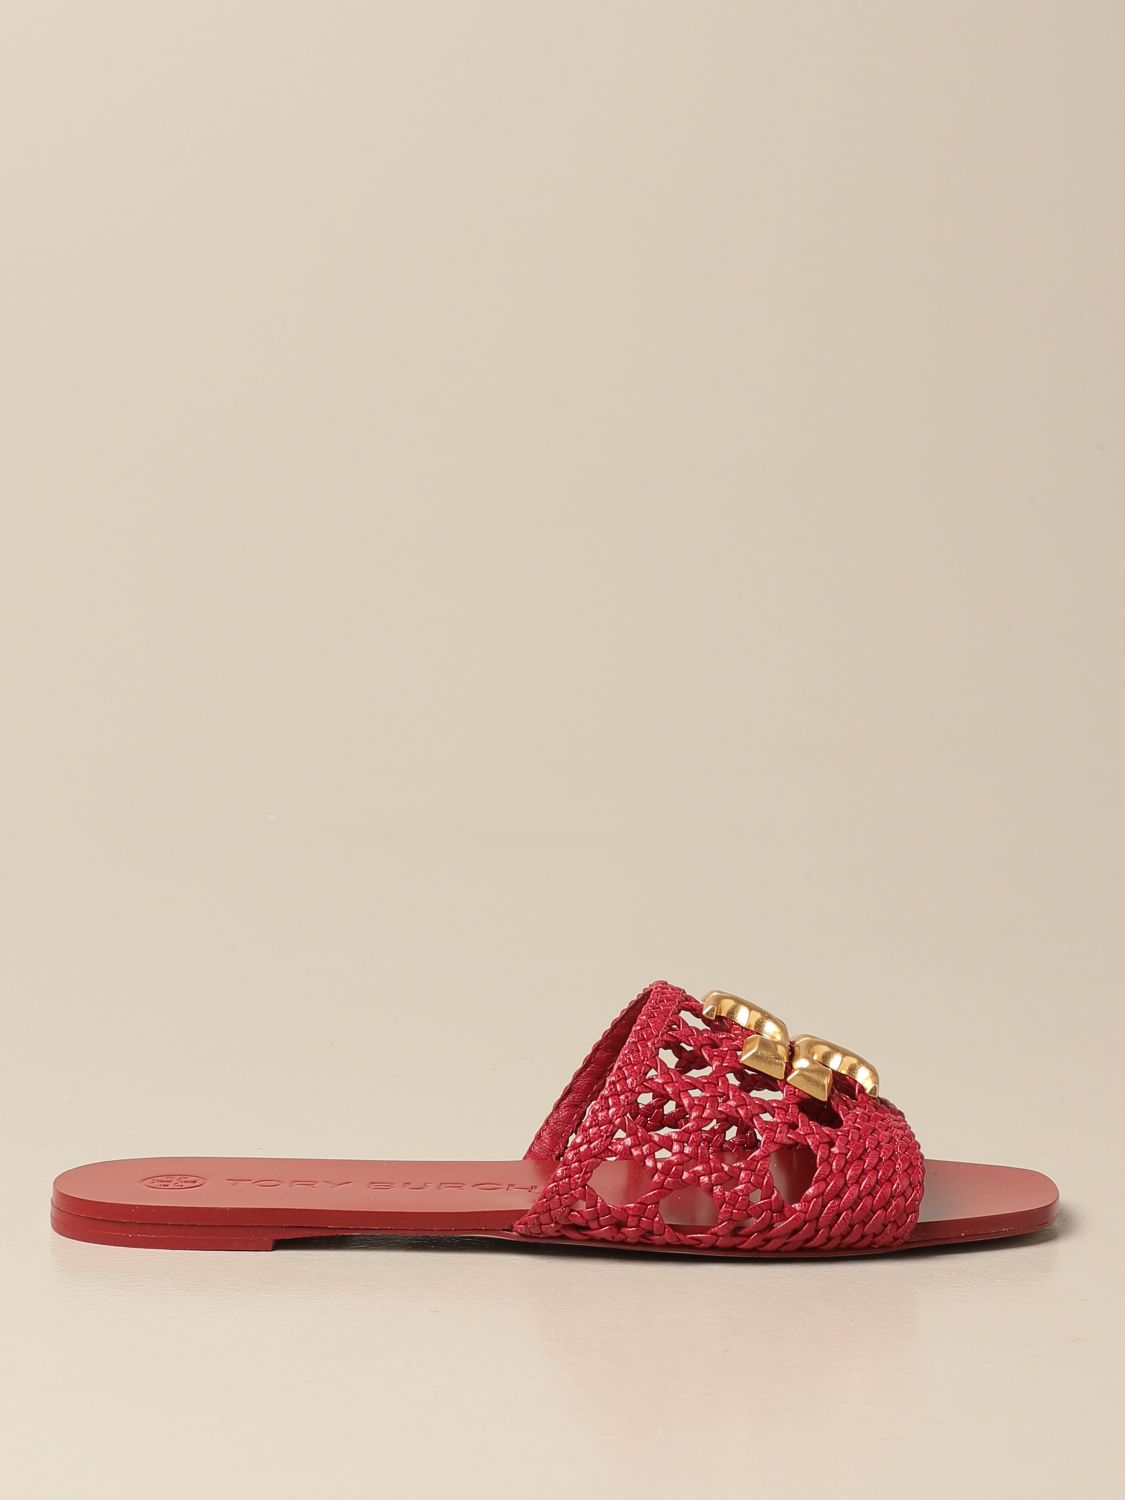 Flat sandals Tory Burch: Tory Burch sandals in woven leather with logo red 1